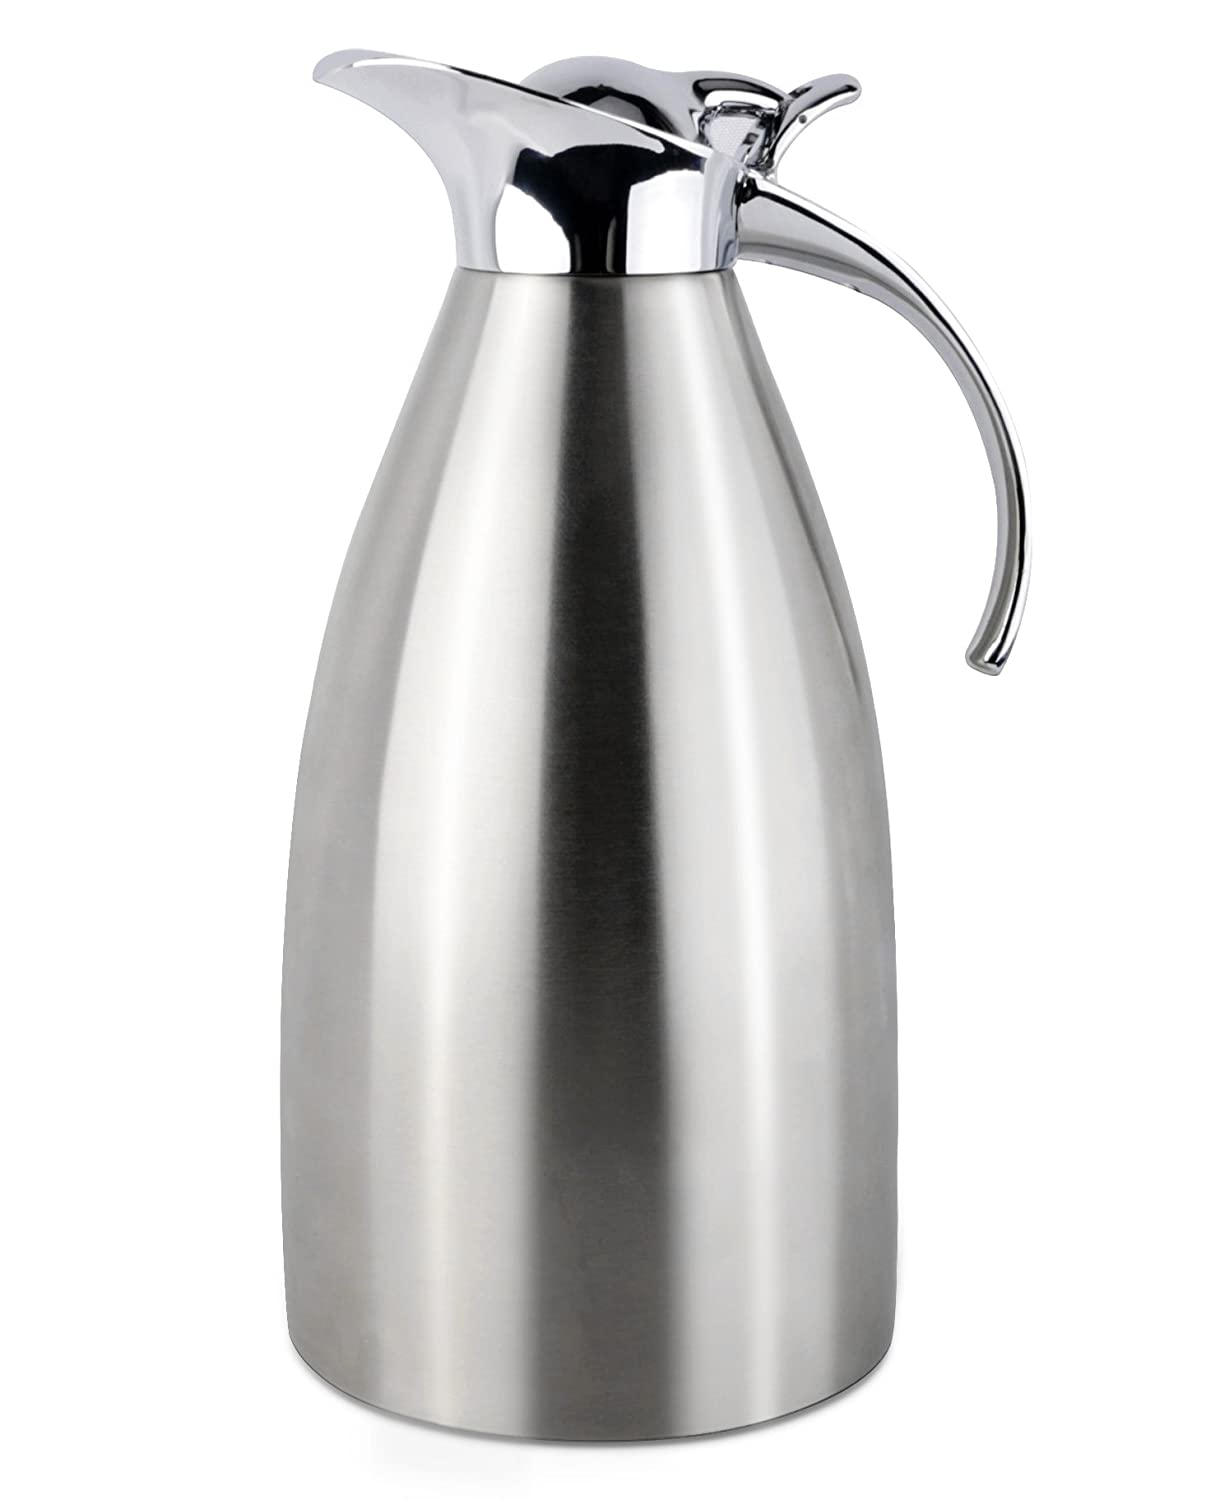 Panesor Thermal Coffee Carafe Double Walled Vacuum Insulated, 68 Oz Hot Coffee Pitcher